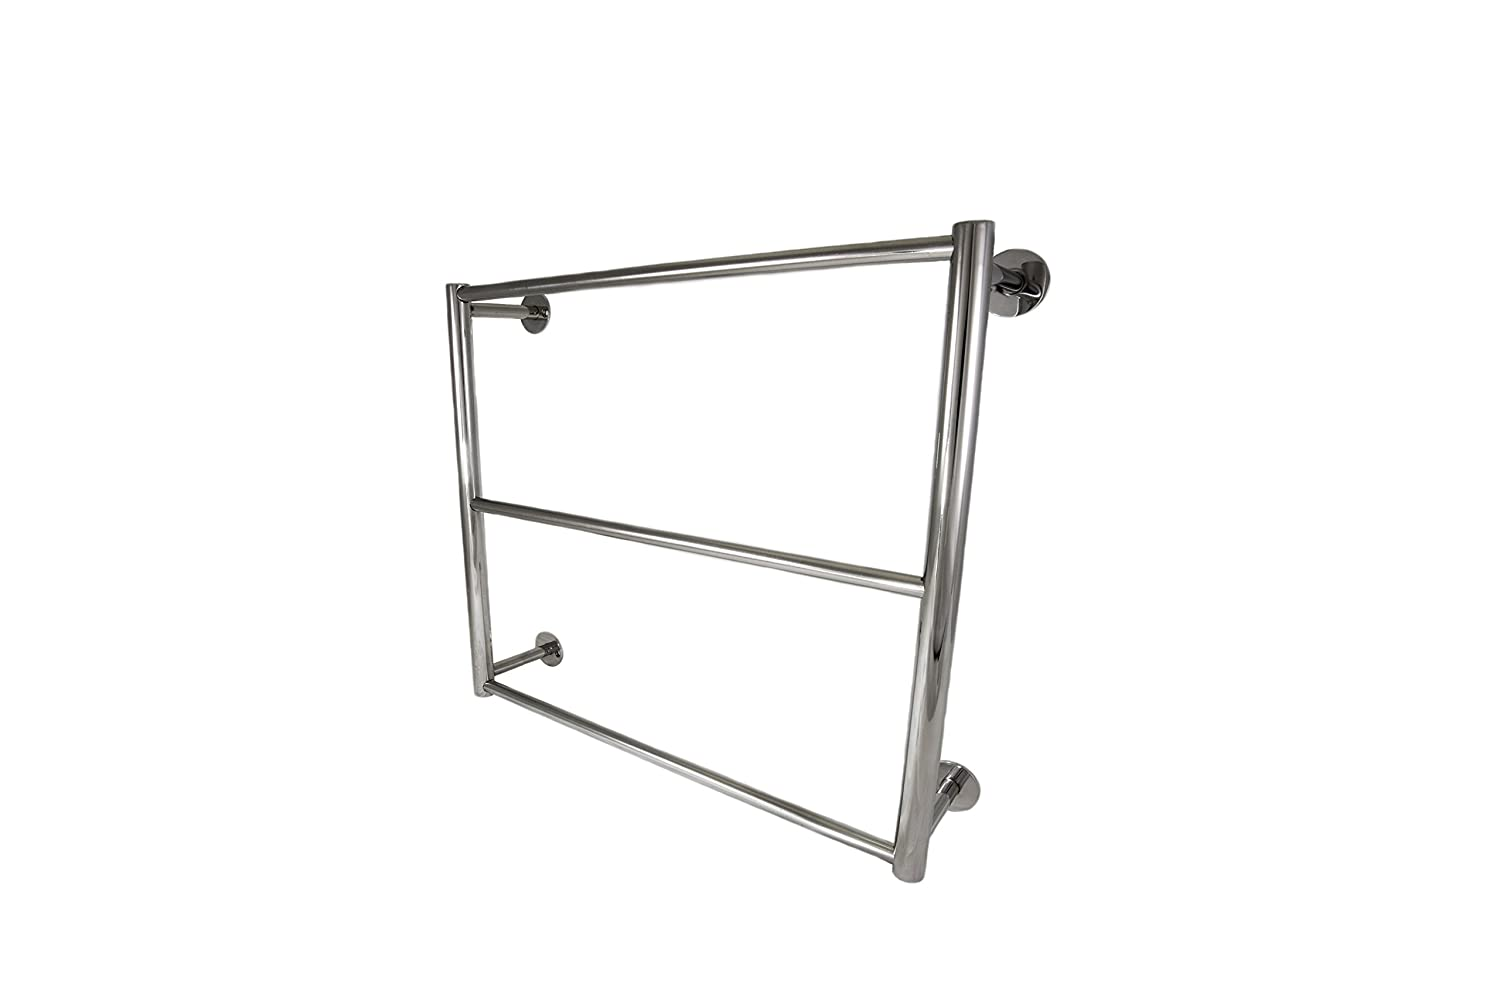 Preferred Bath Accessories 3015‐18SS 18 inch Triple Towel Rack, Bright Polished lovely